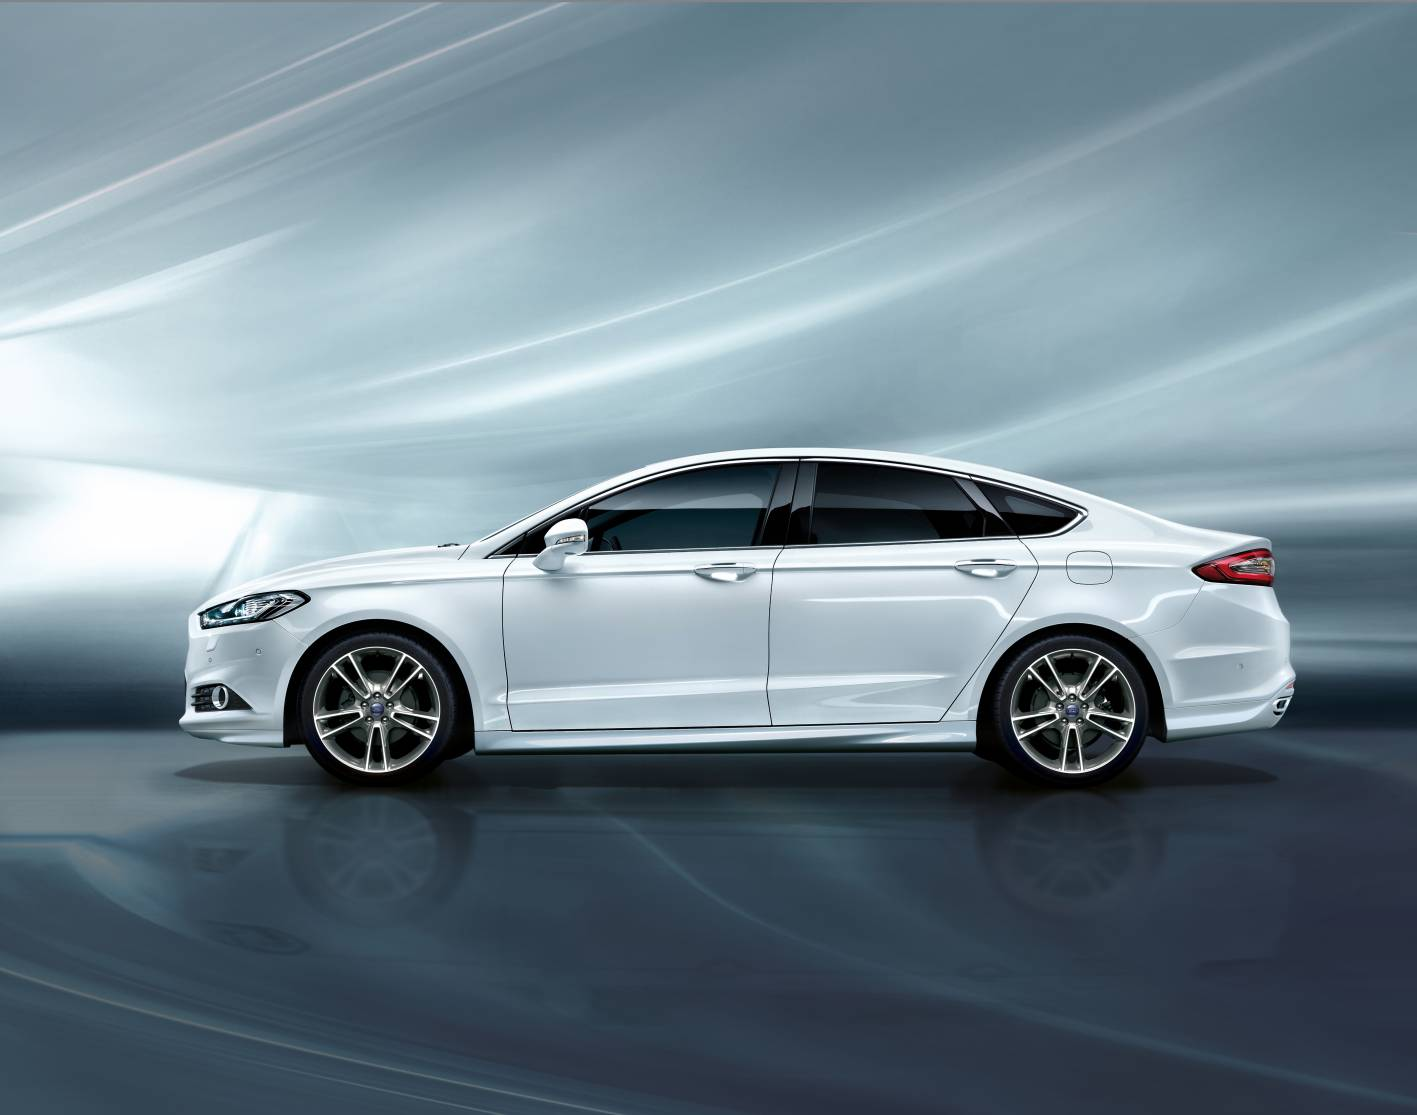 2017 ford mondeo gets premium look and new metalicious colour. Black Bedroom Furniture Sets. Home Design Ideas